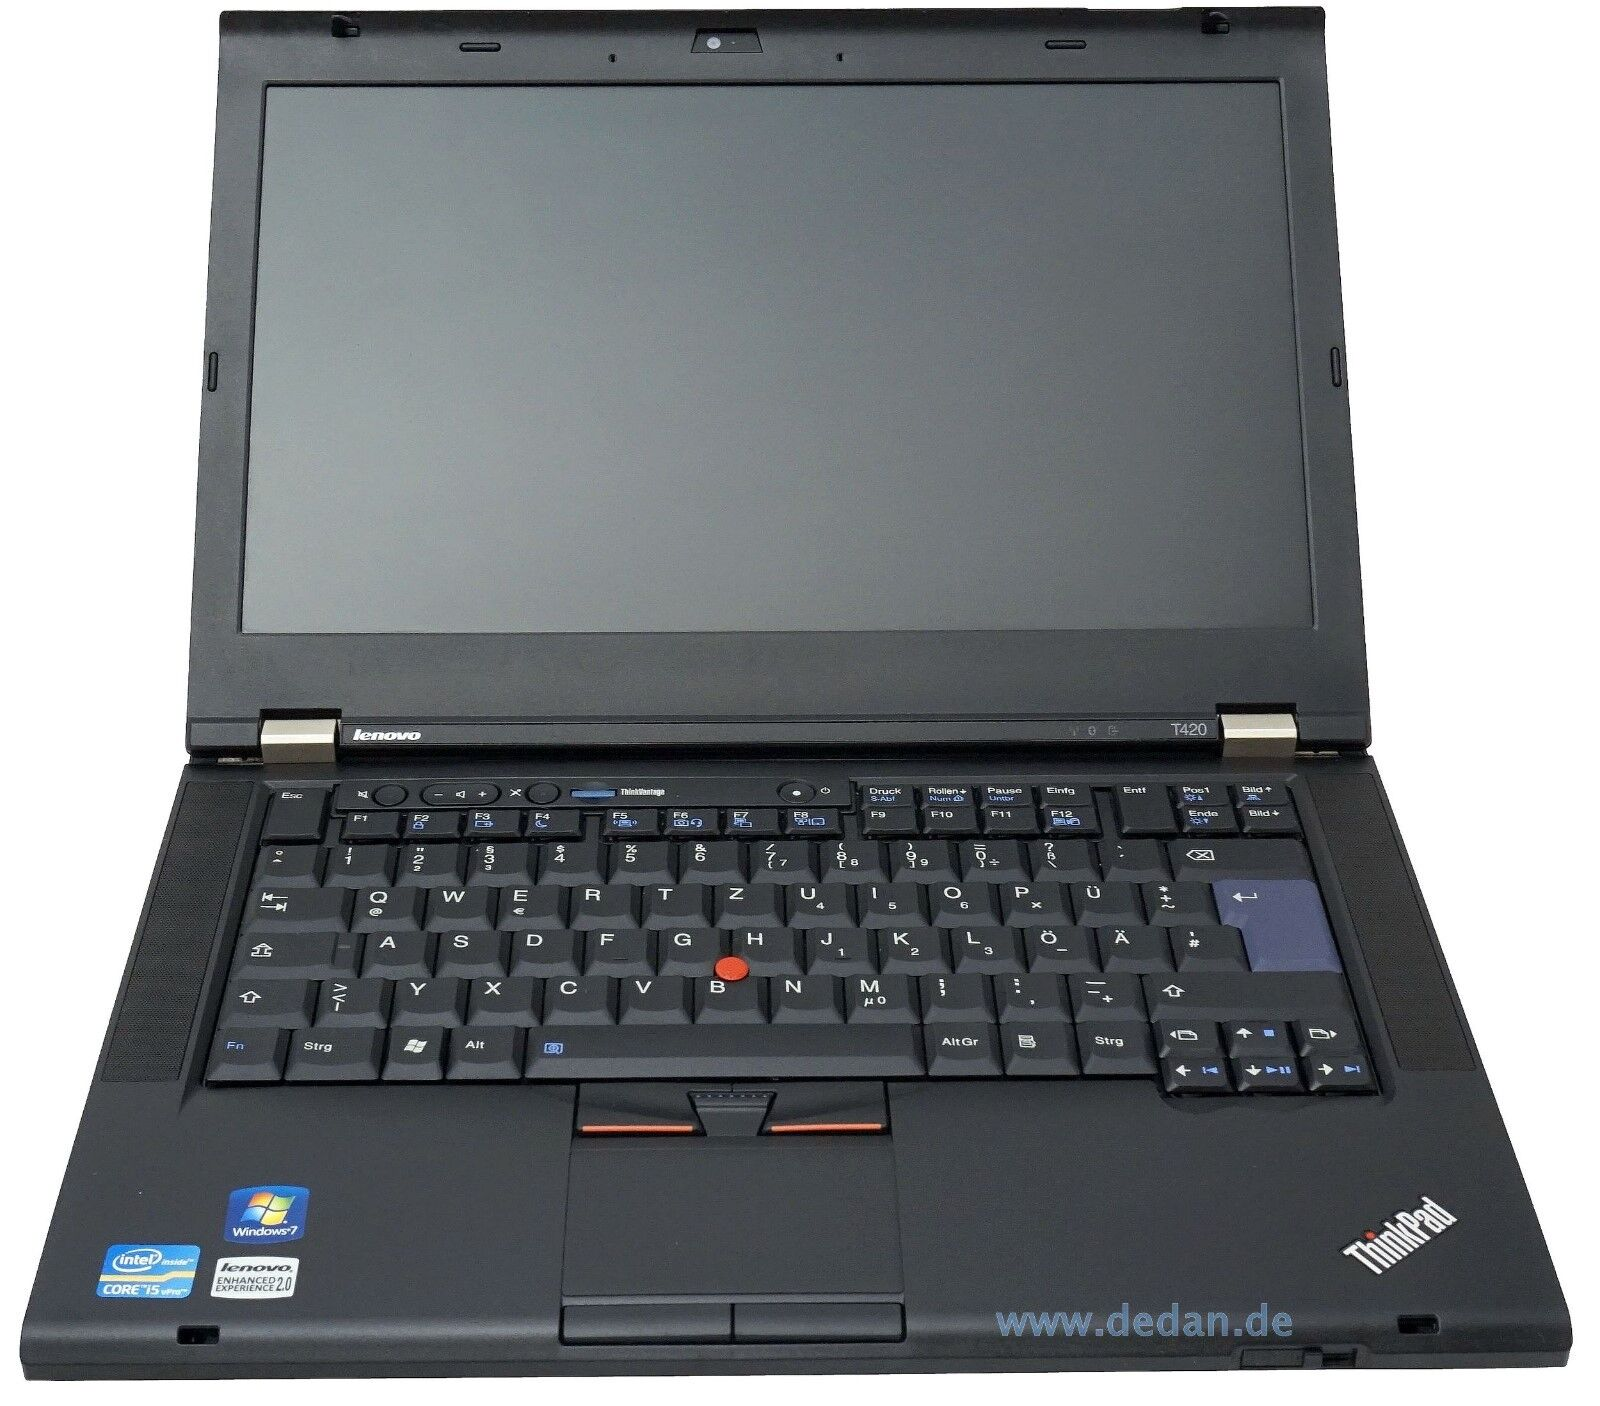 lenovo thinkpad t420 i5 2 5 ghz 4gb 320gb nvidia umts cam. Black Bedroom Furniture Sets. Home Design Ideas